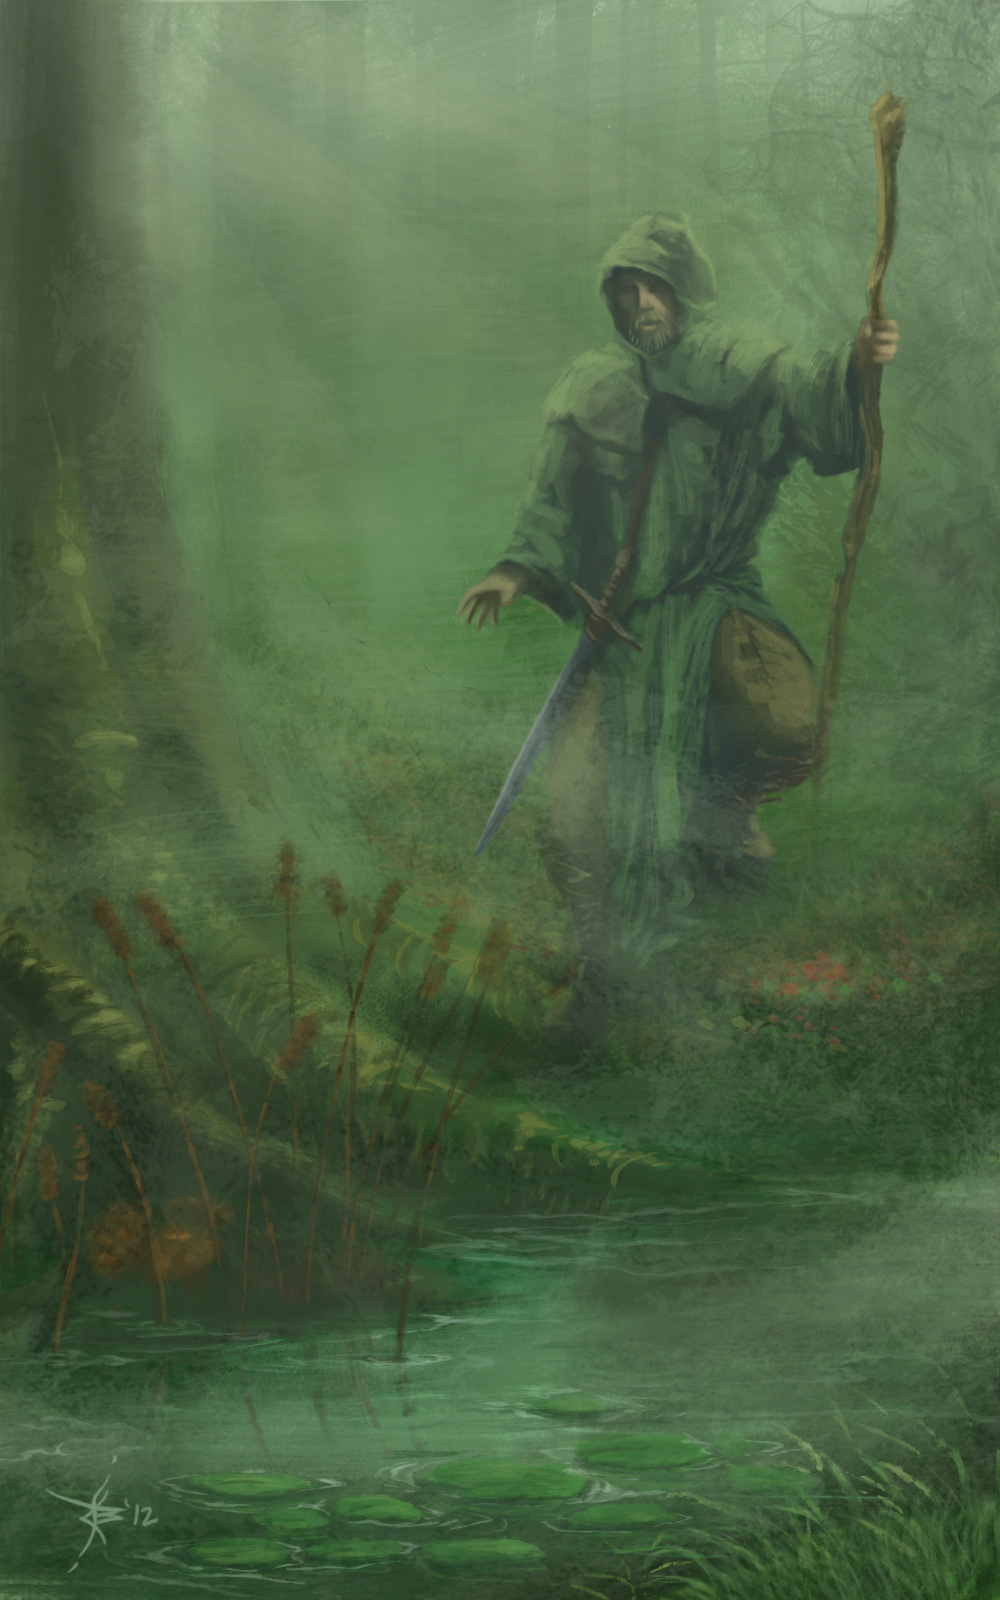 druid-in-the-forest-mist